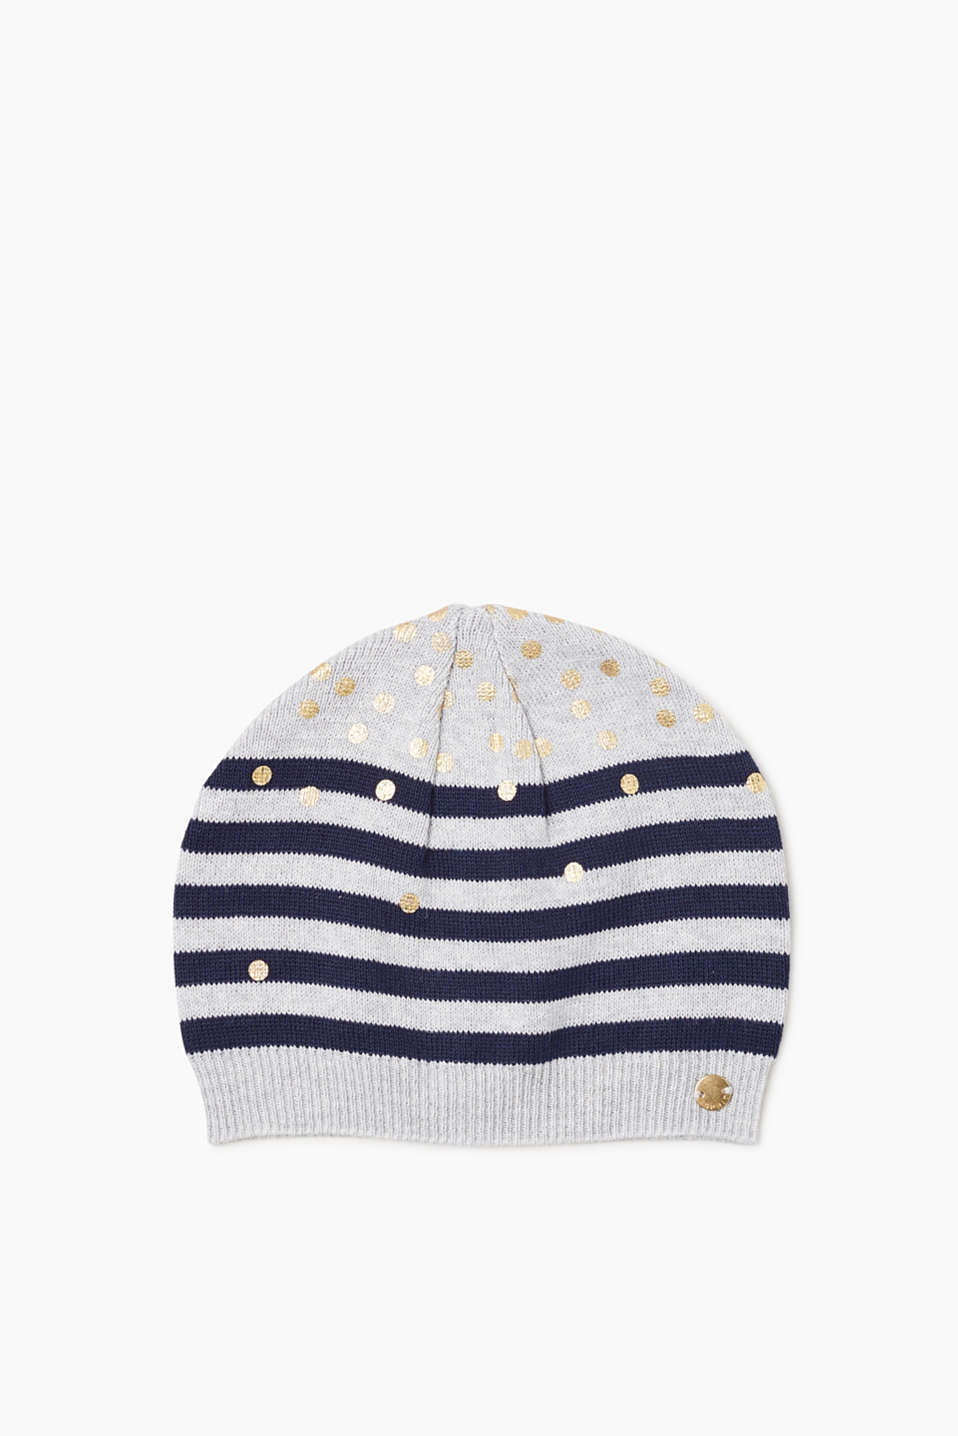 The combination of stripes and dots makes this knit beanie look so pretty!